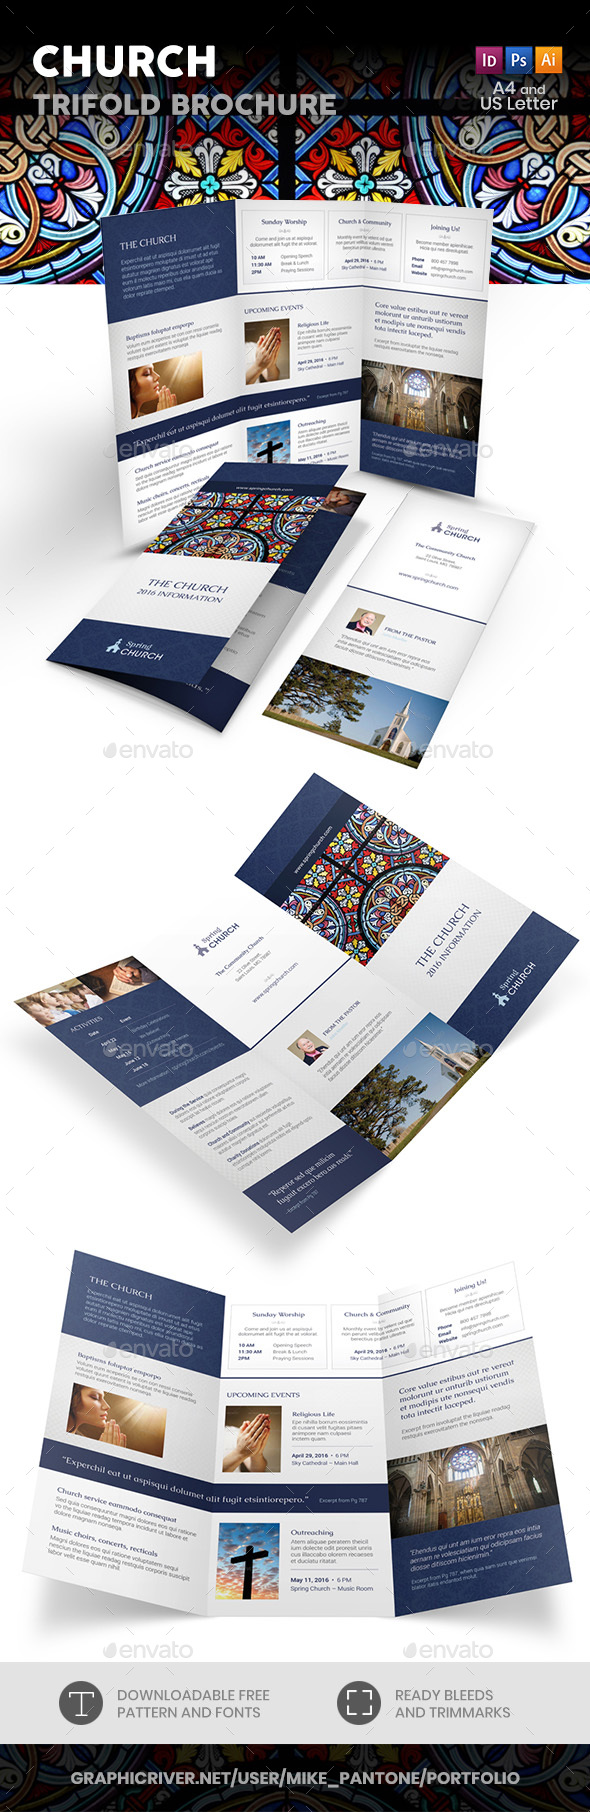 Church Trifold Brochure 3 - Informational Brochures